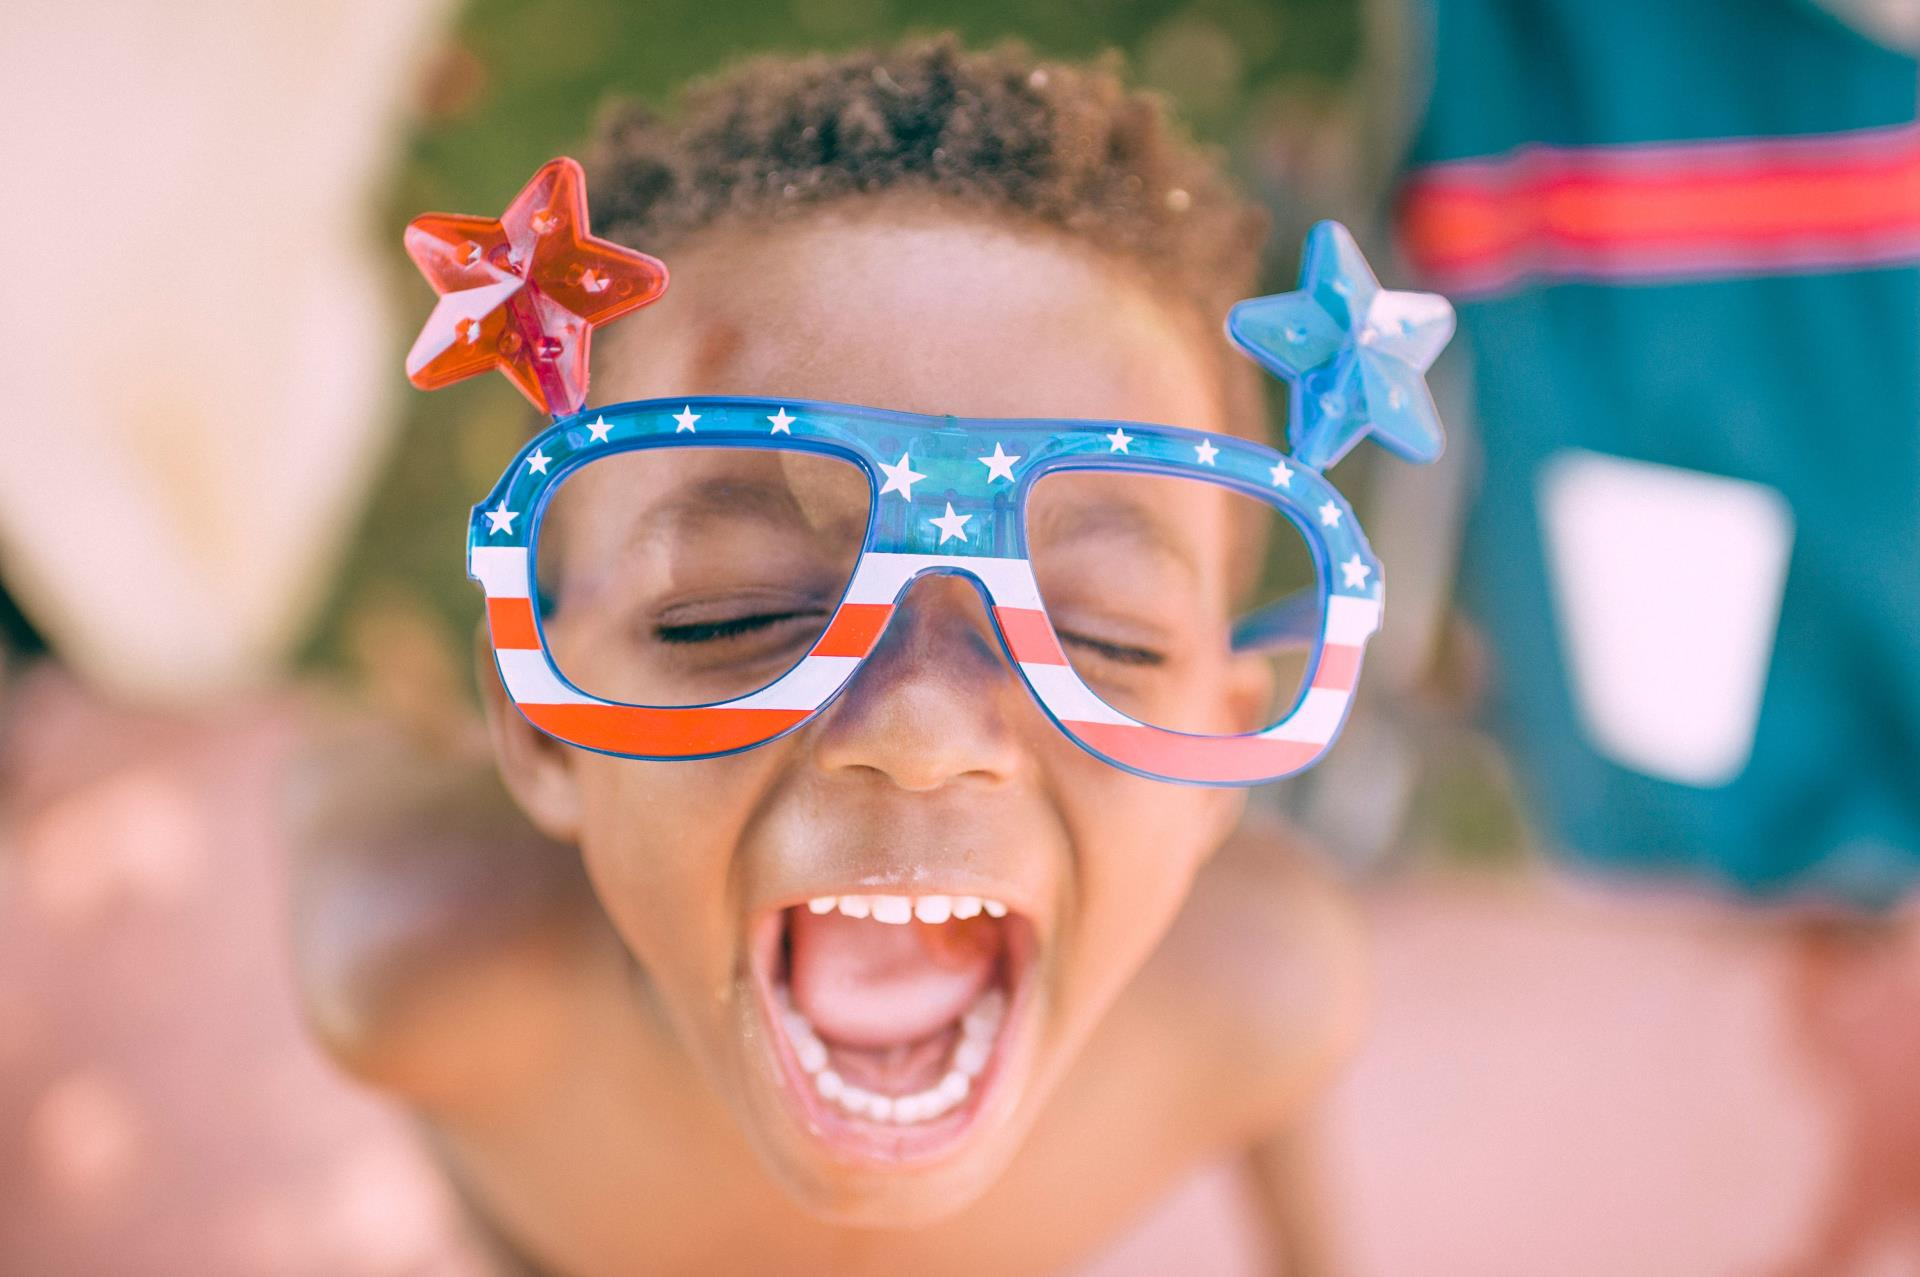 July 4 boy by Frank McKenna